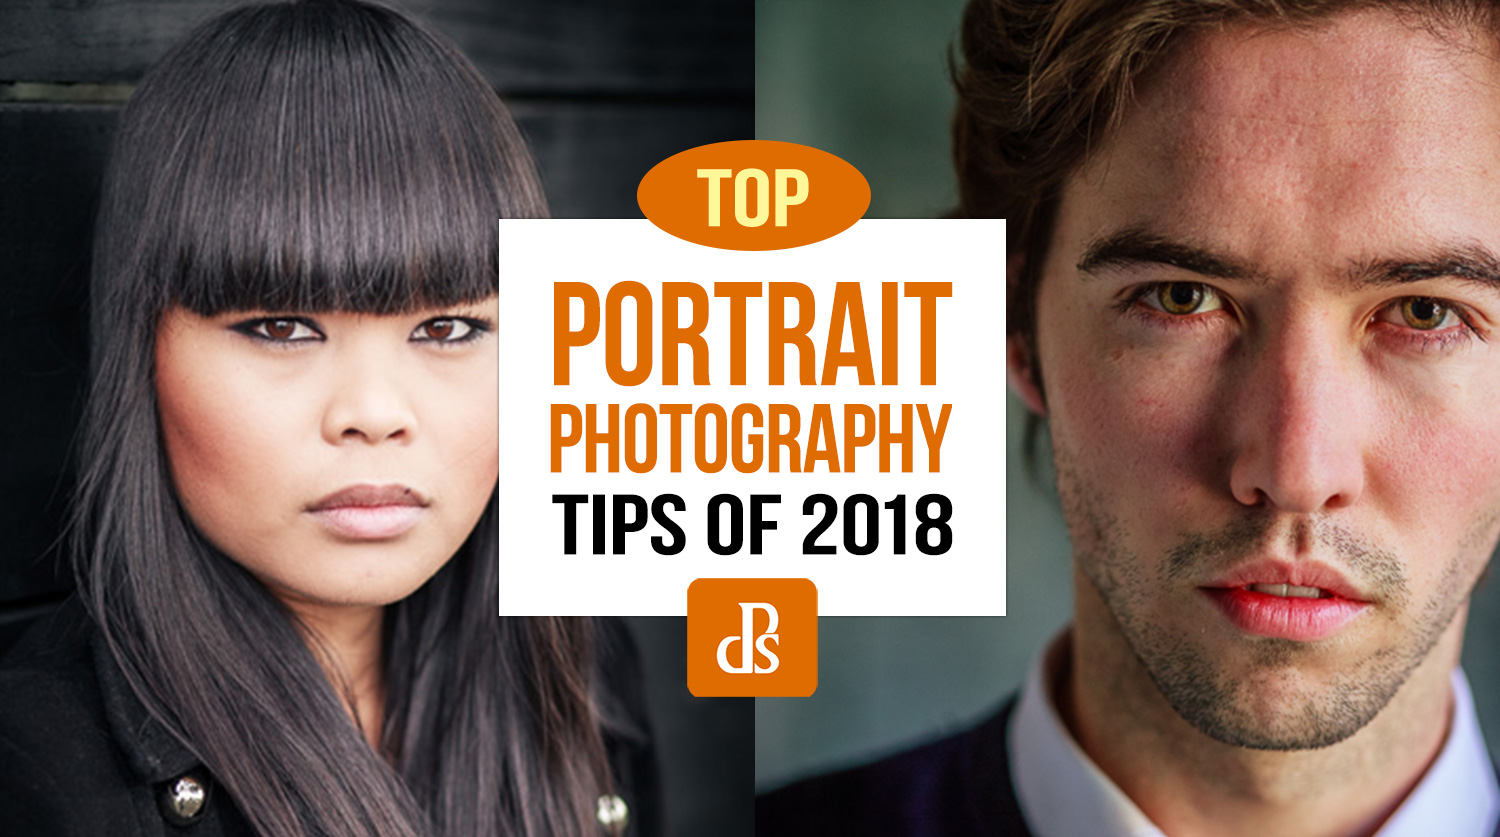 https://i2.wp.com/digital-photography-school.com/wp-content/uploads/2018/12/dps-top-portait-photography-tips-2018.jpg?resize=1500%2C837&ssl=1